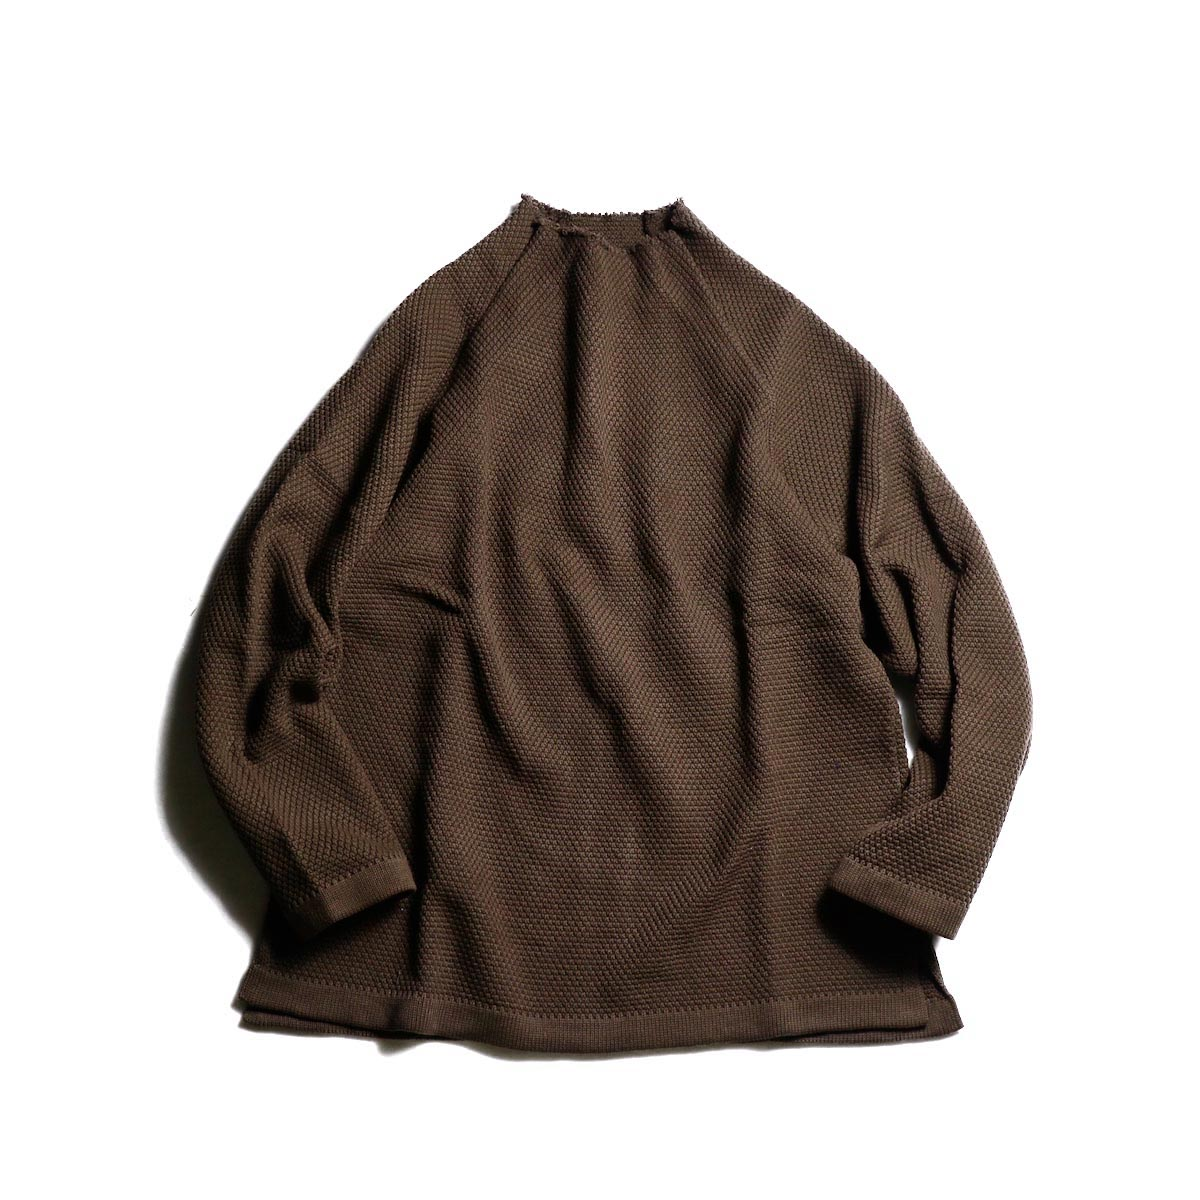 CURLY / KIPS BTL SWEATER (Brown)